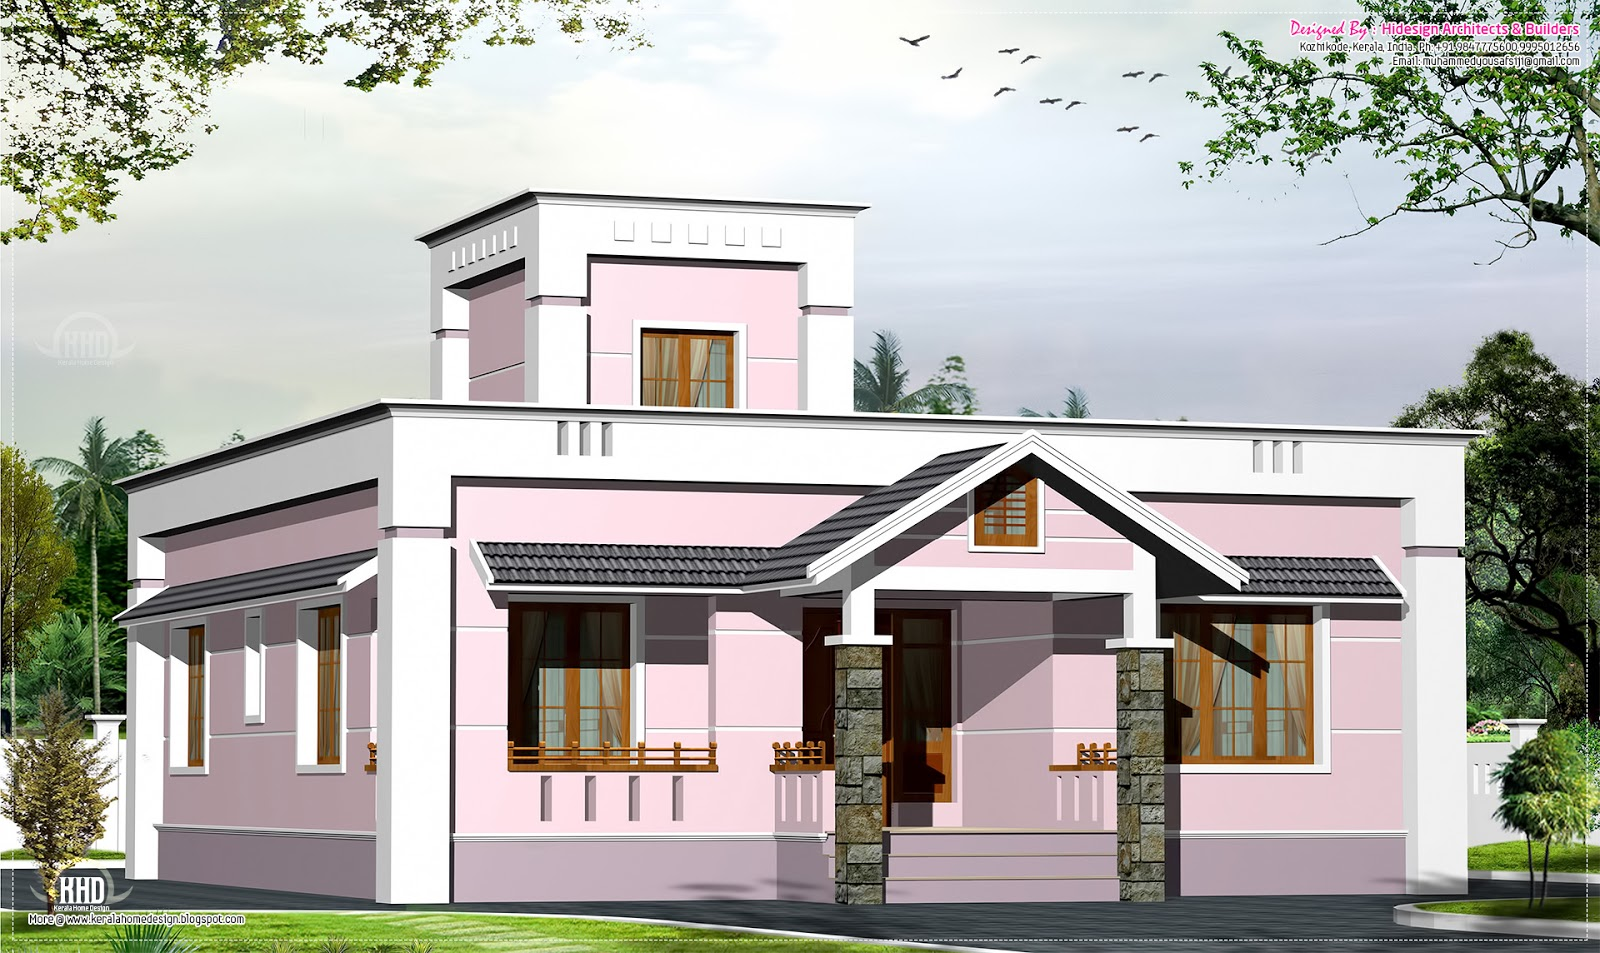 New home design 1000 small budget villa plan Home design and budget